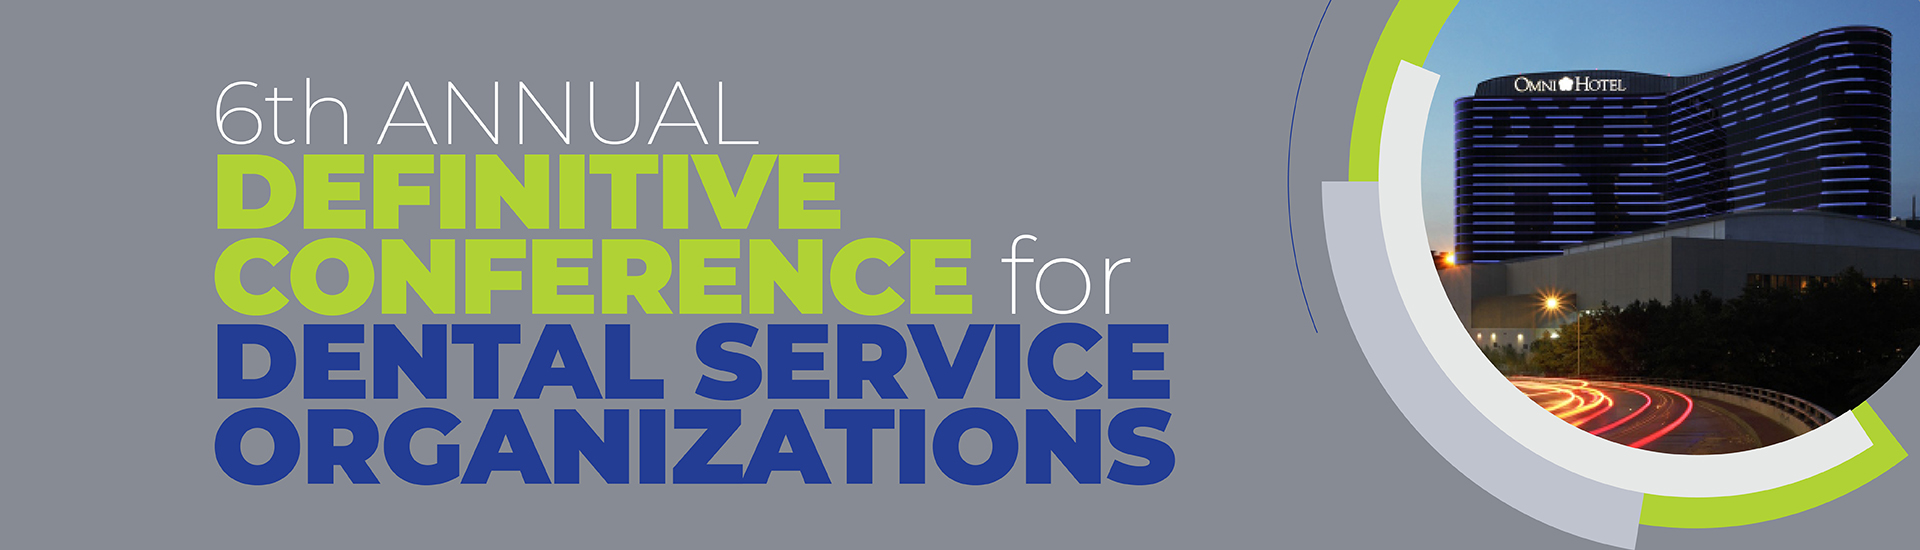 The 6th Annual Definitive Conference for Dental Service Organizations